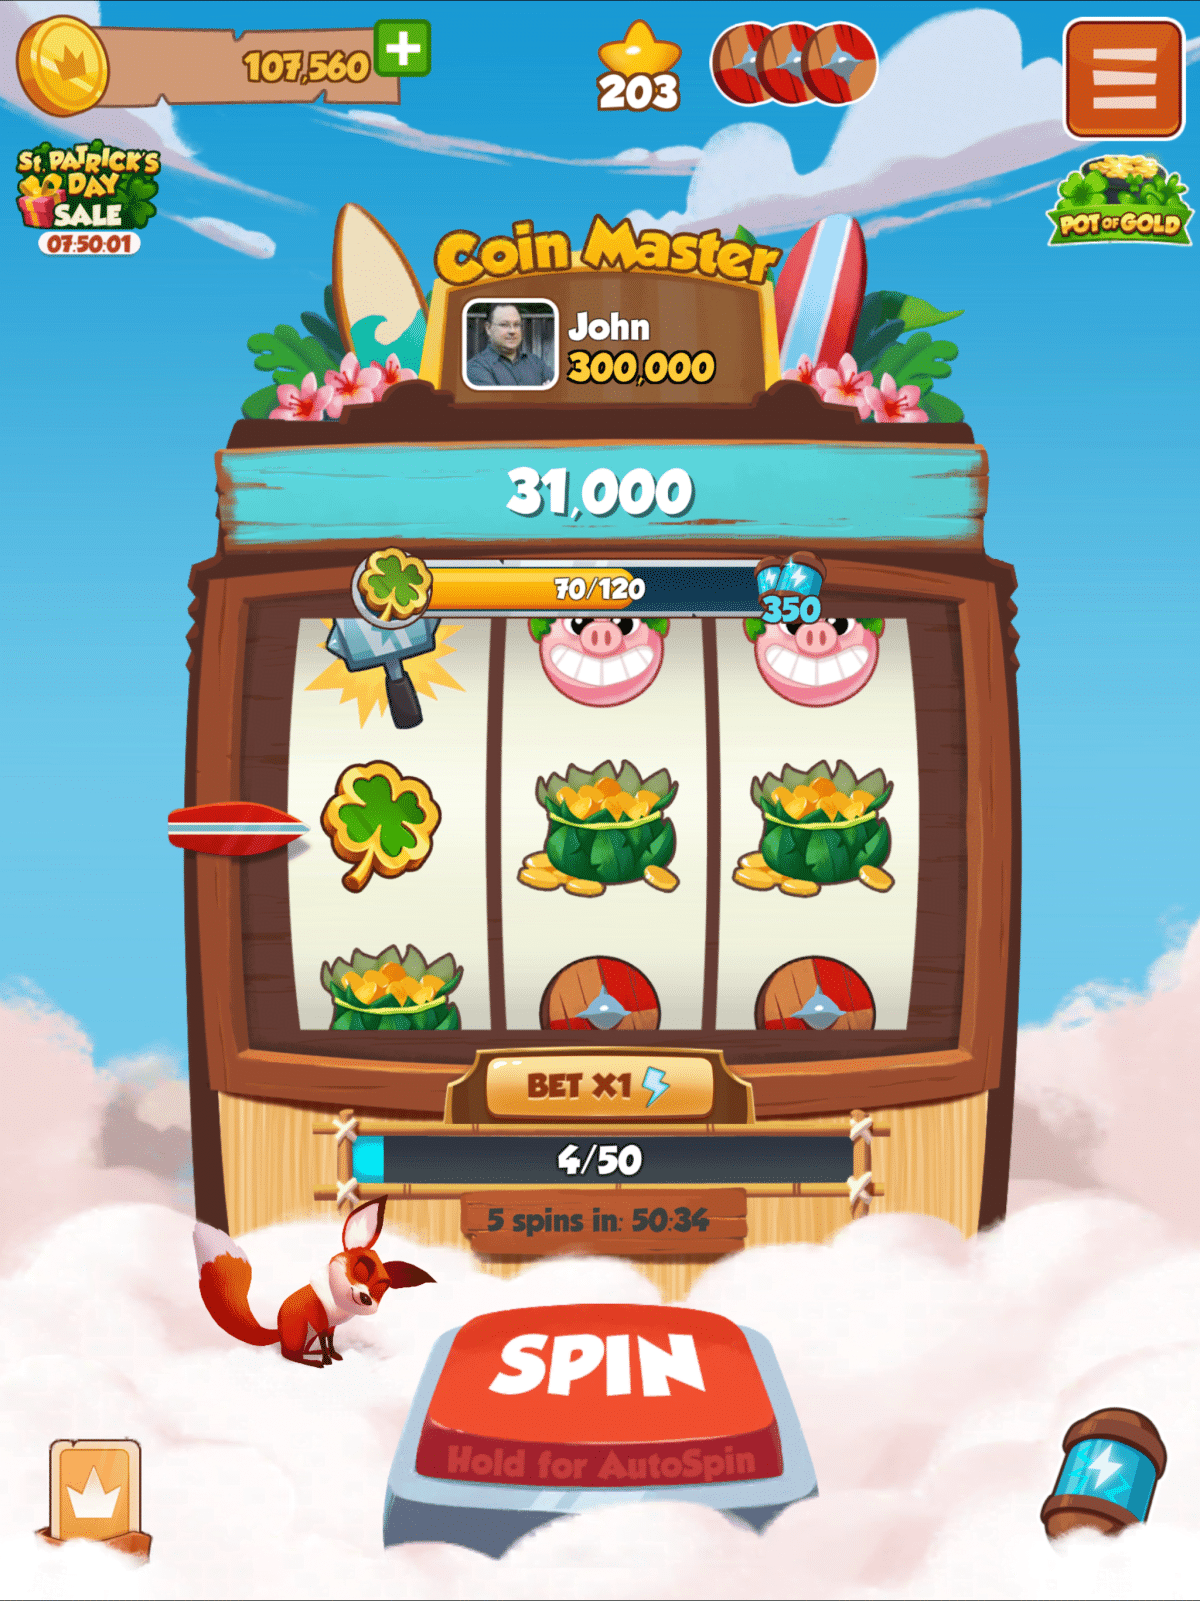 Get free spins on Coin Master - Coin Master Cheats